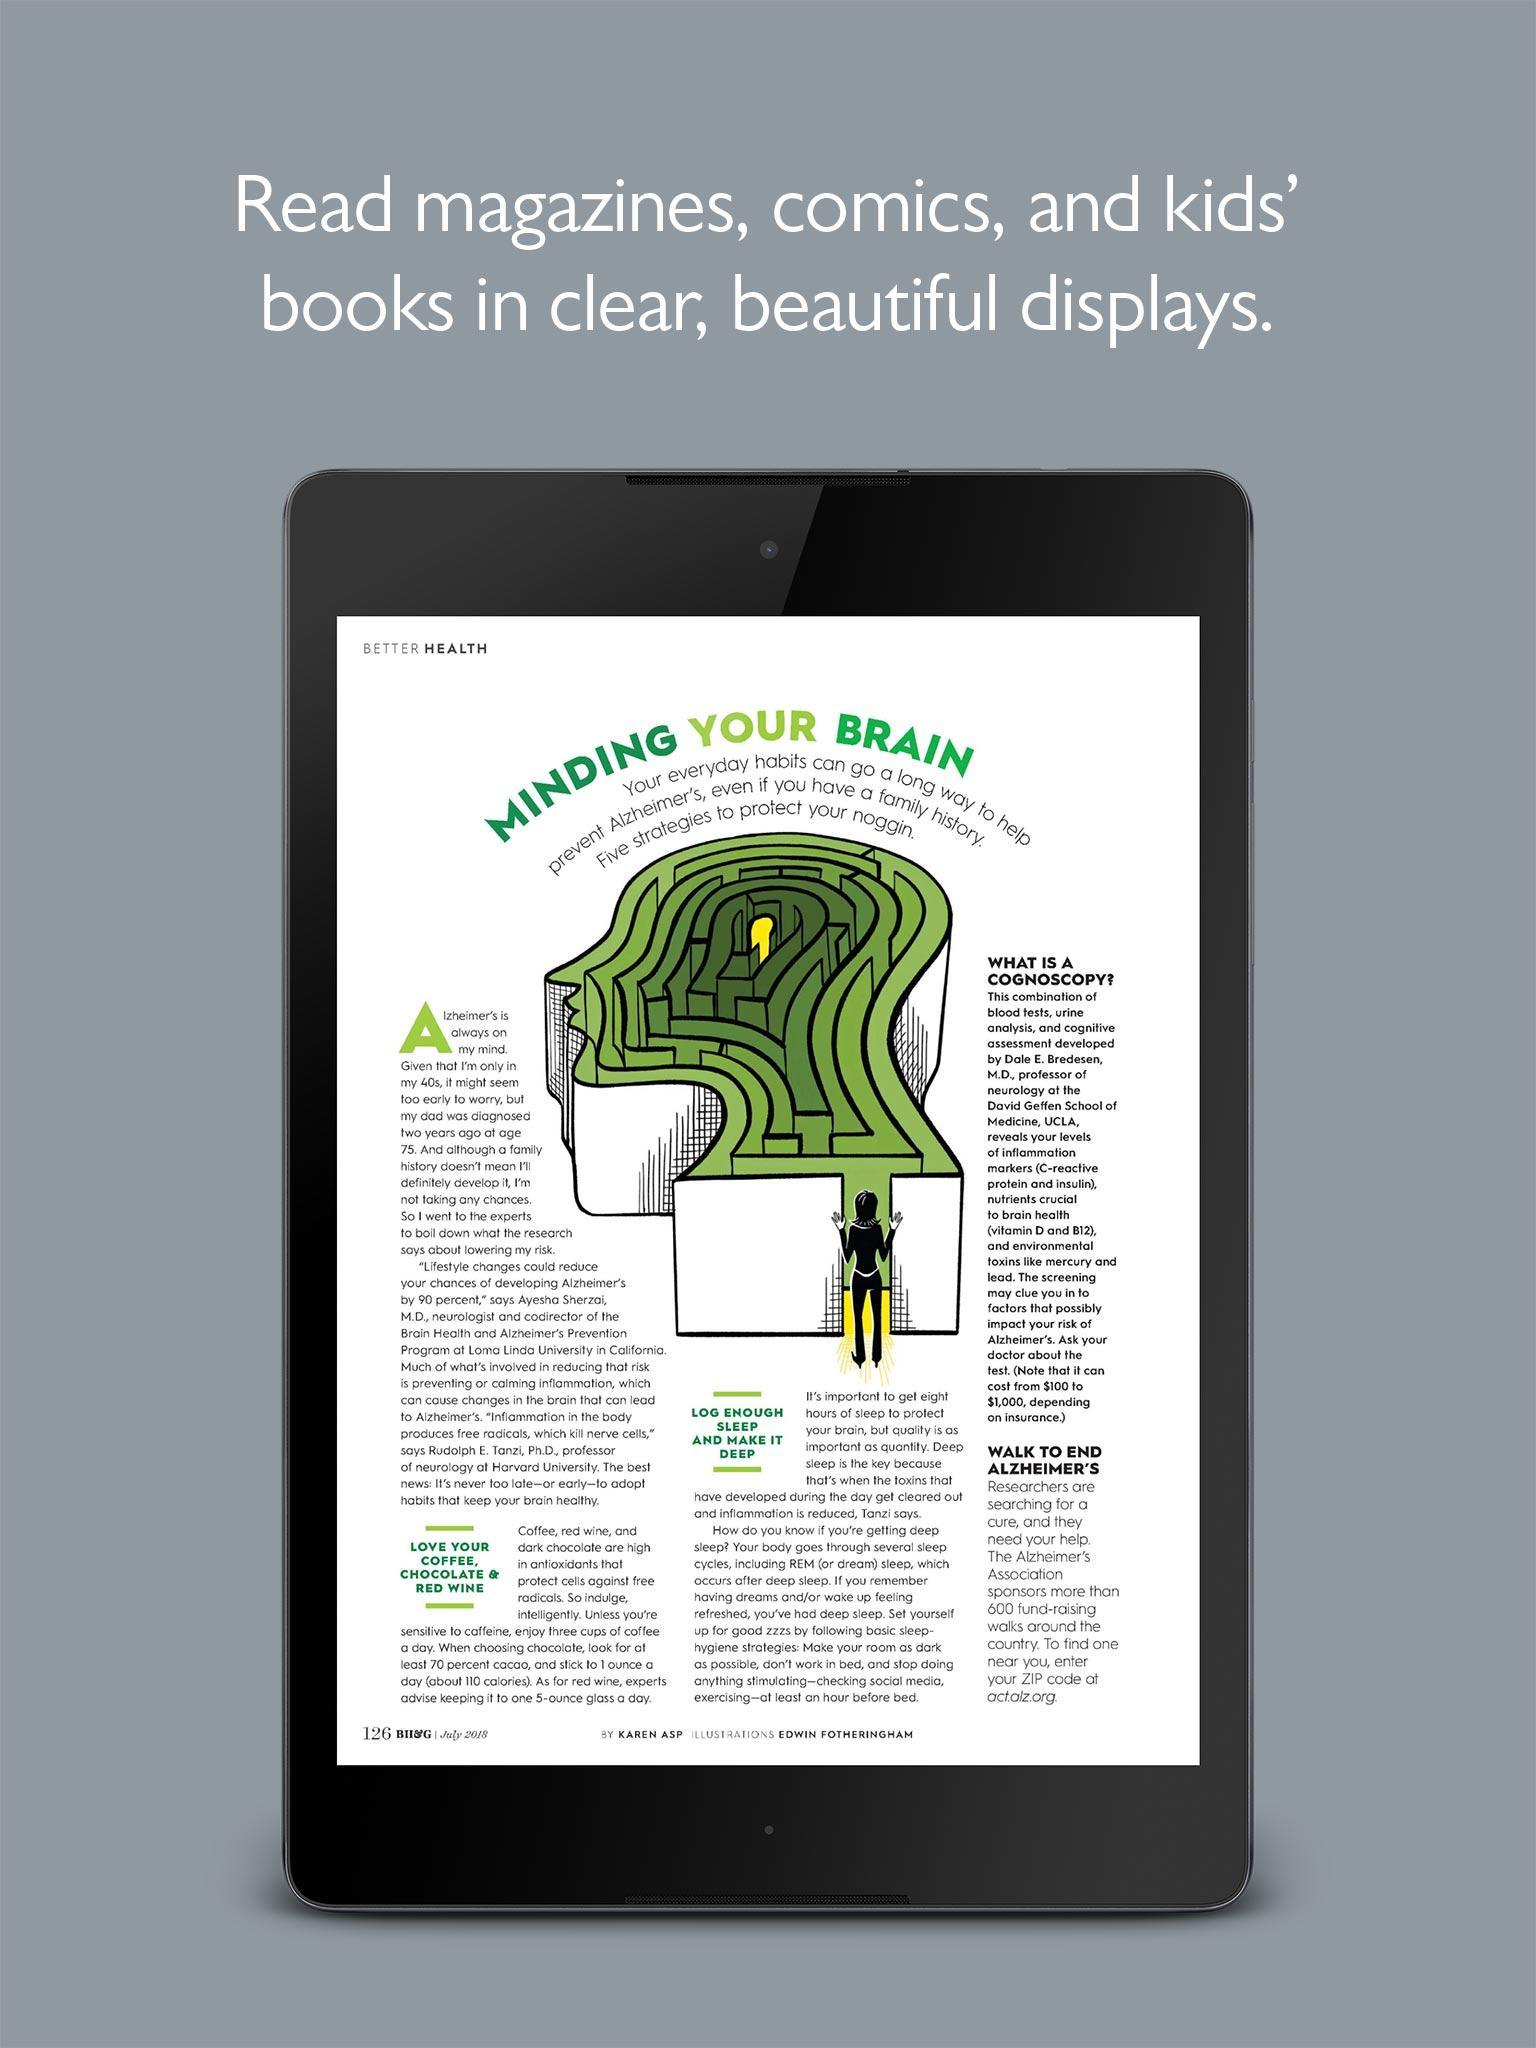 NOOK Read eBooks & Magazines 5.1.0.27 Screenshot 9